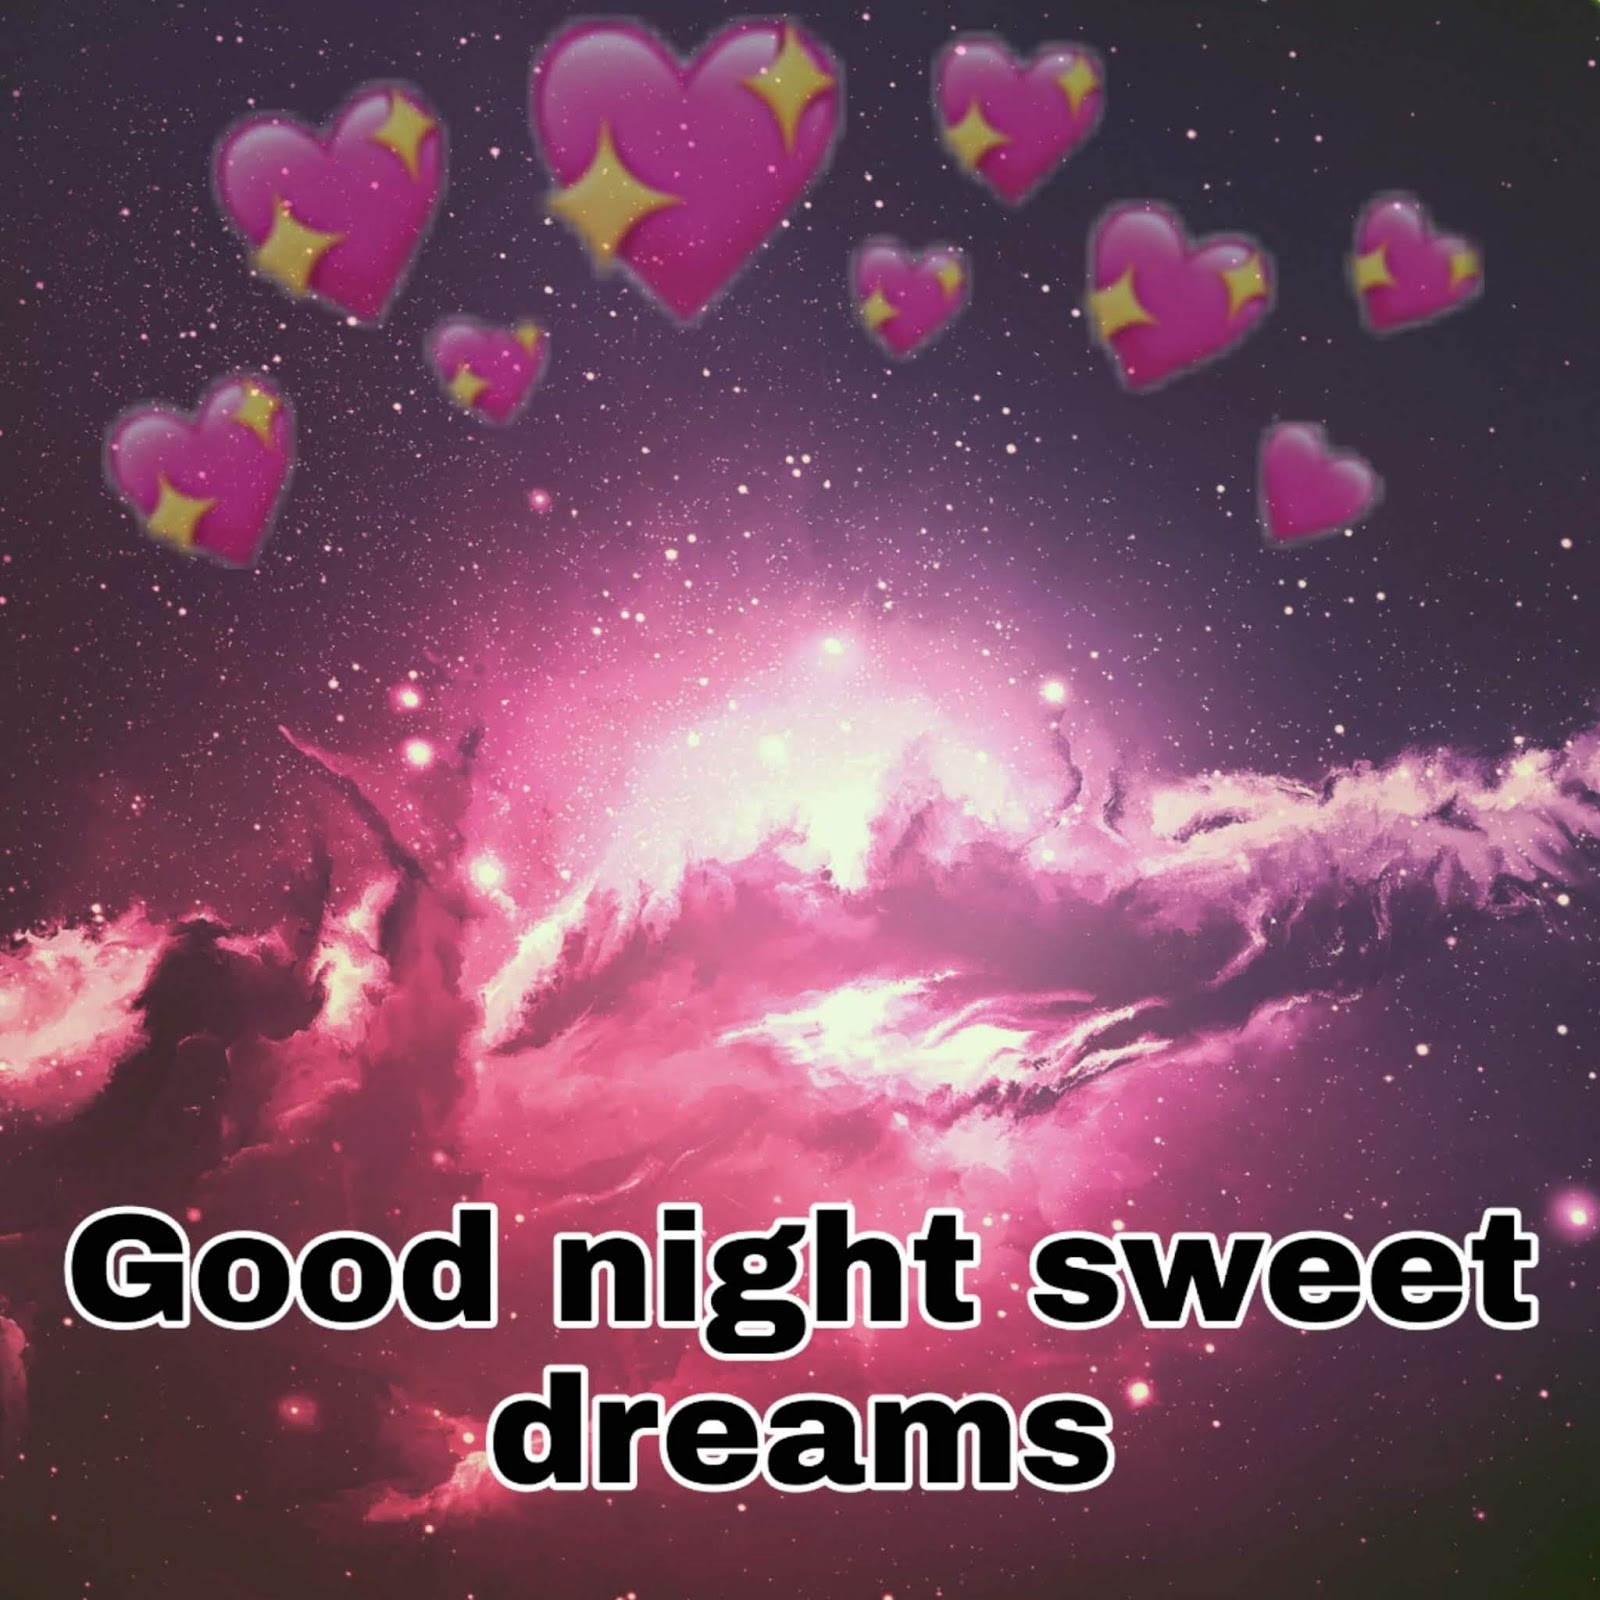 Cute Good Night Image For love